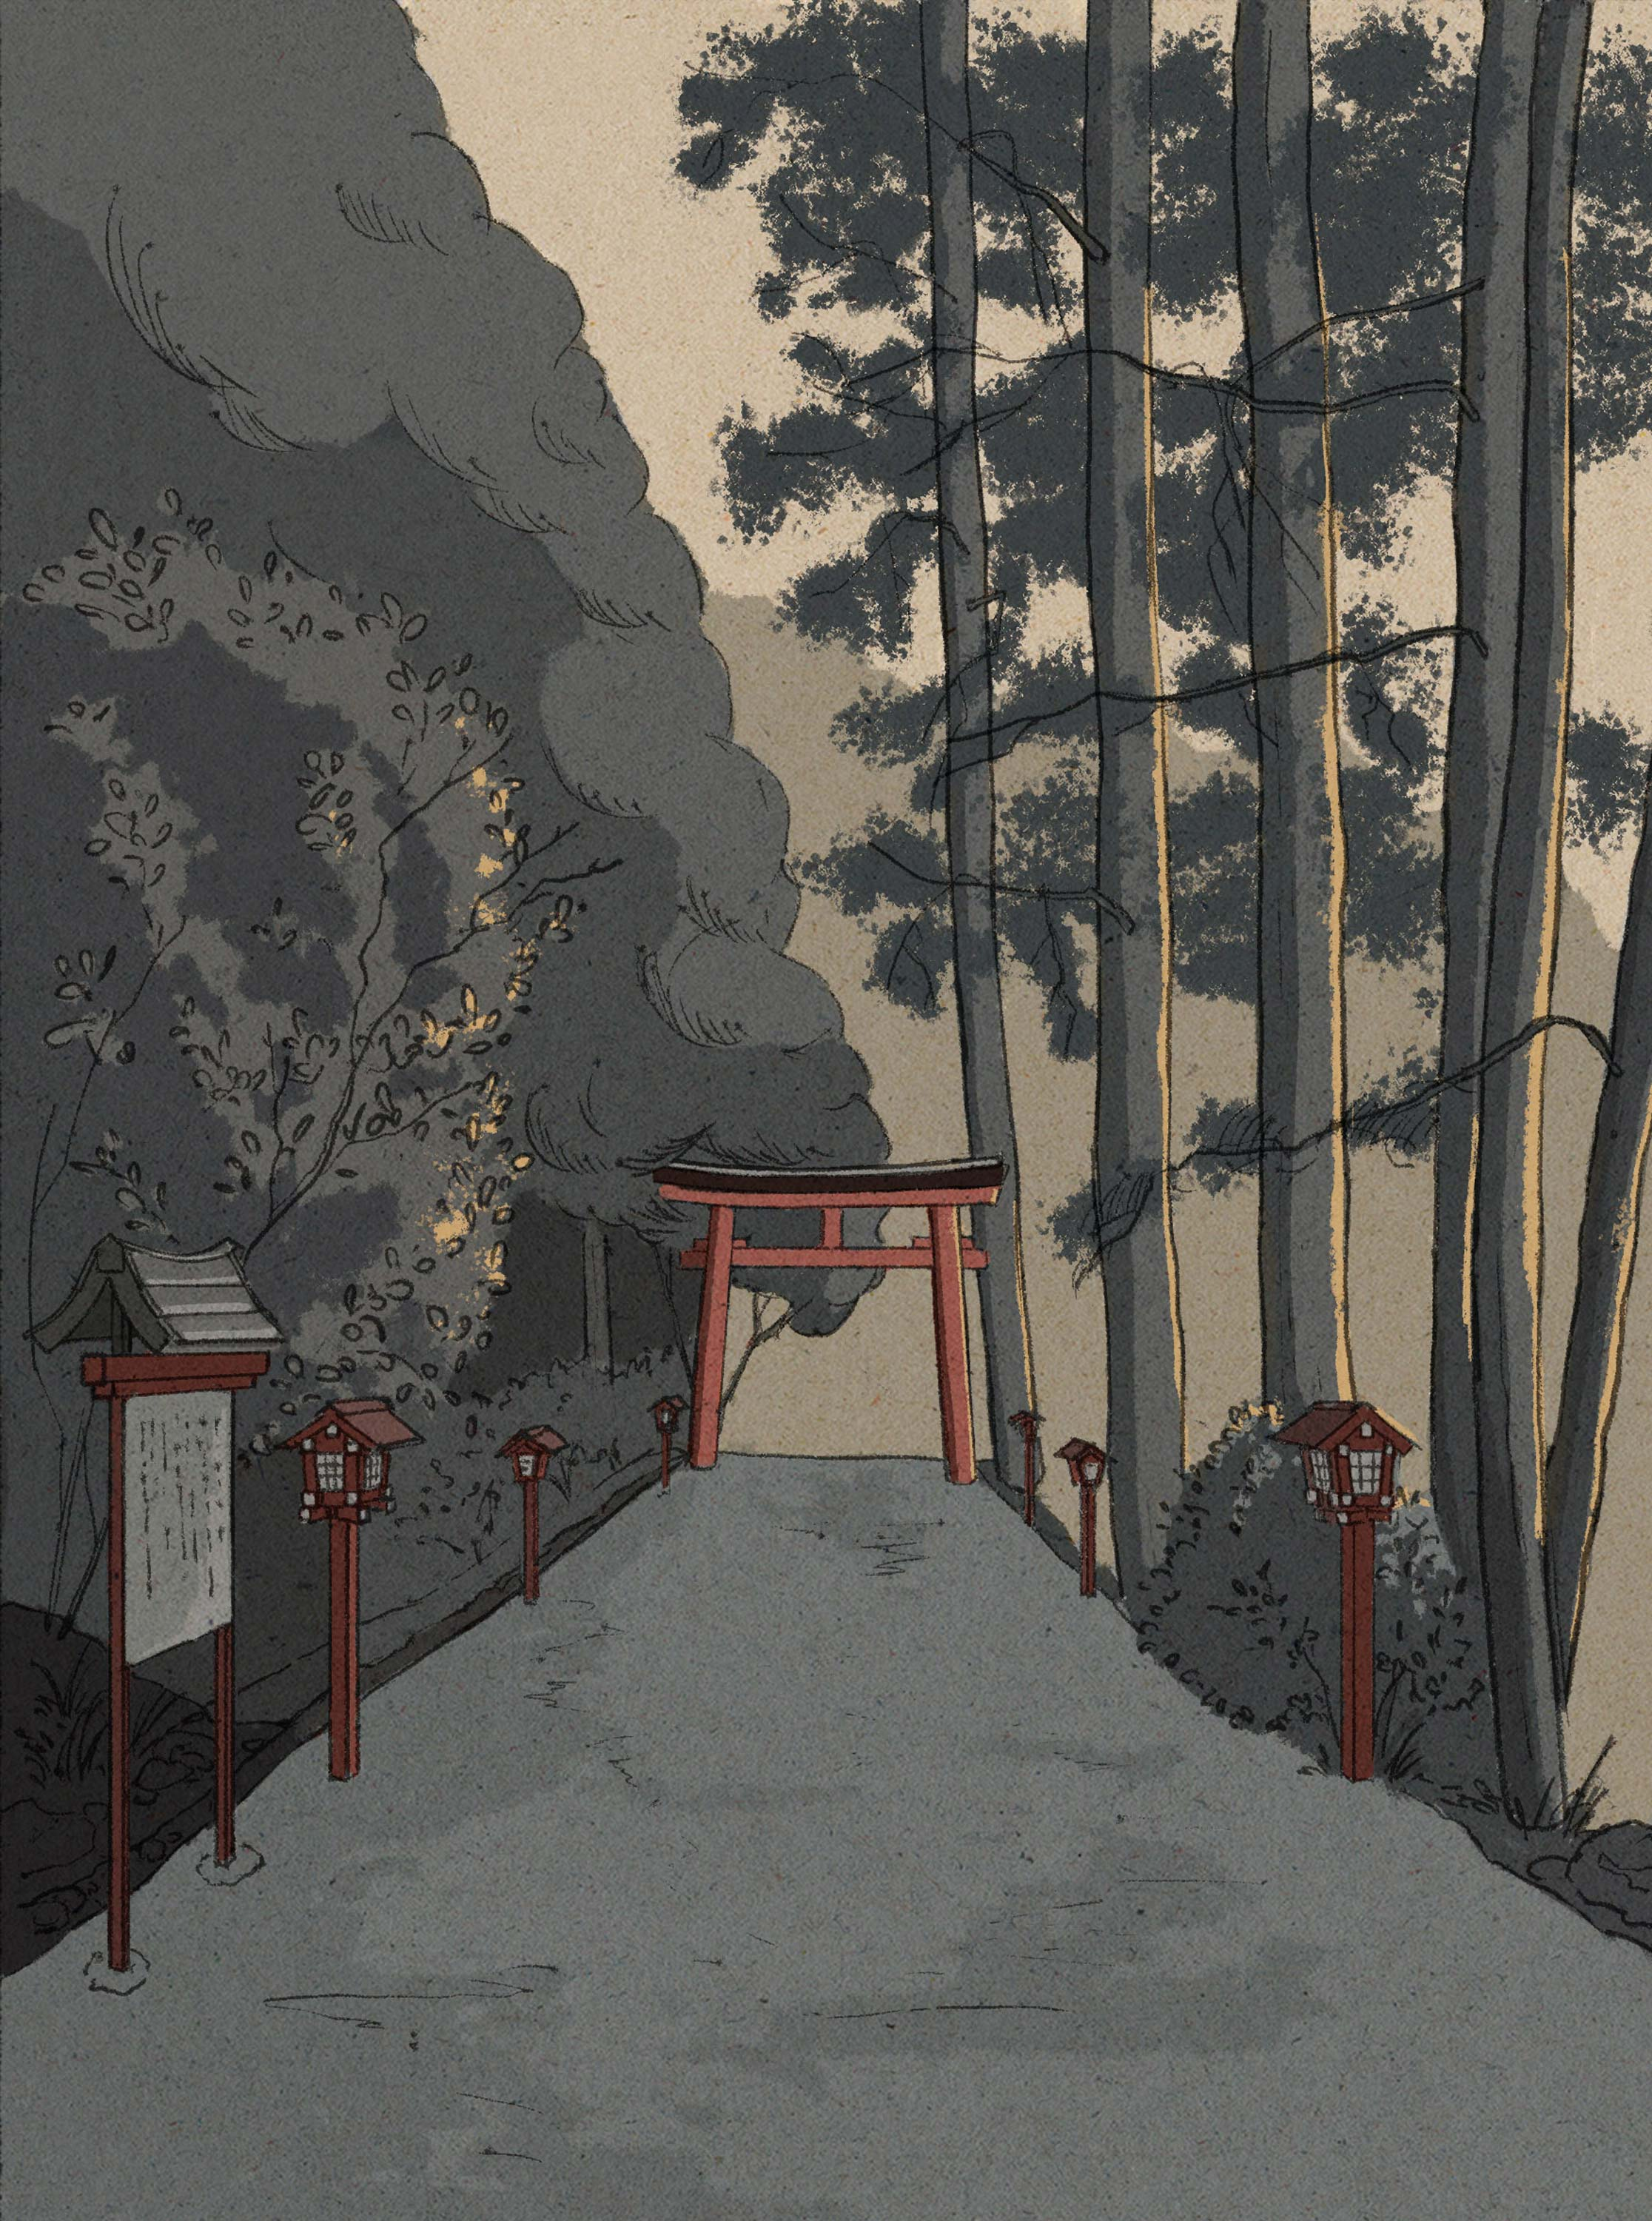 Shinto shrines in the afternoon light. Illustration series